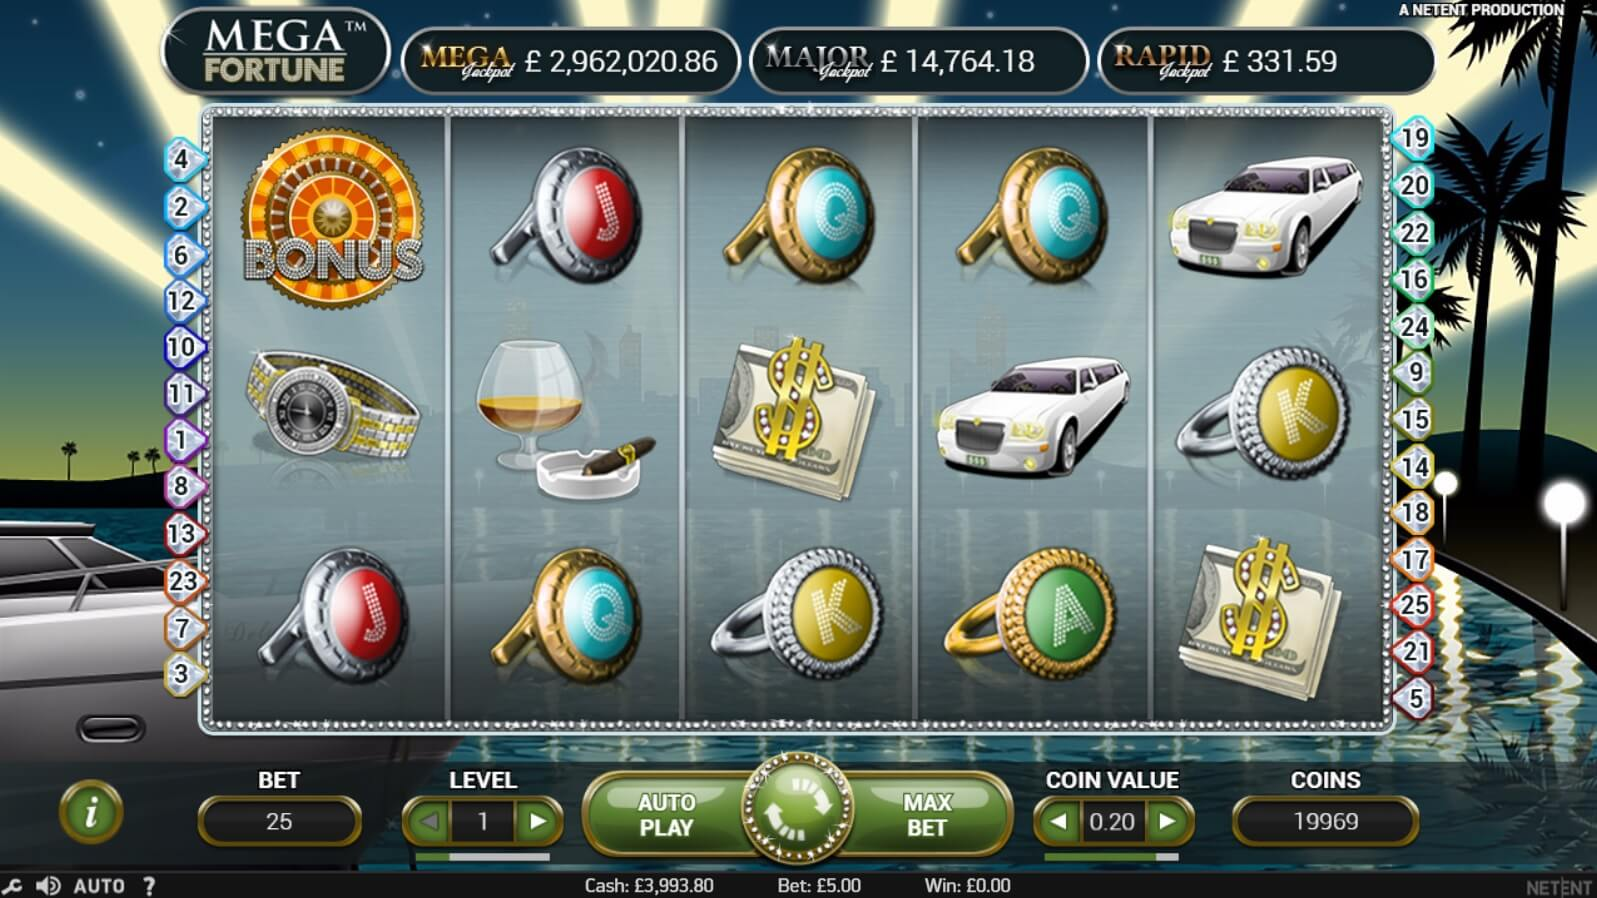 mega fortune jackpot slot review free spins